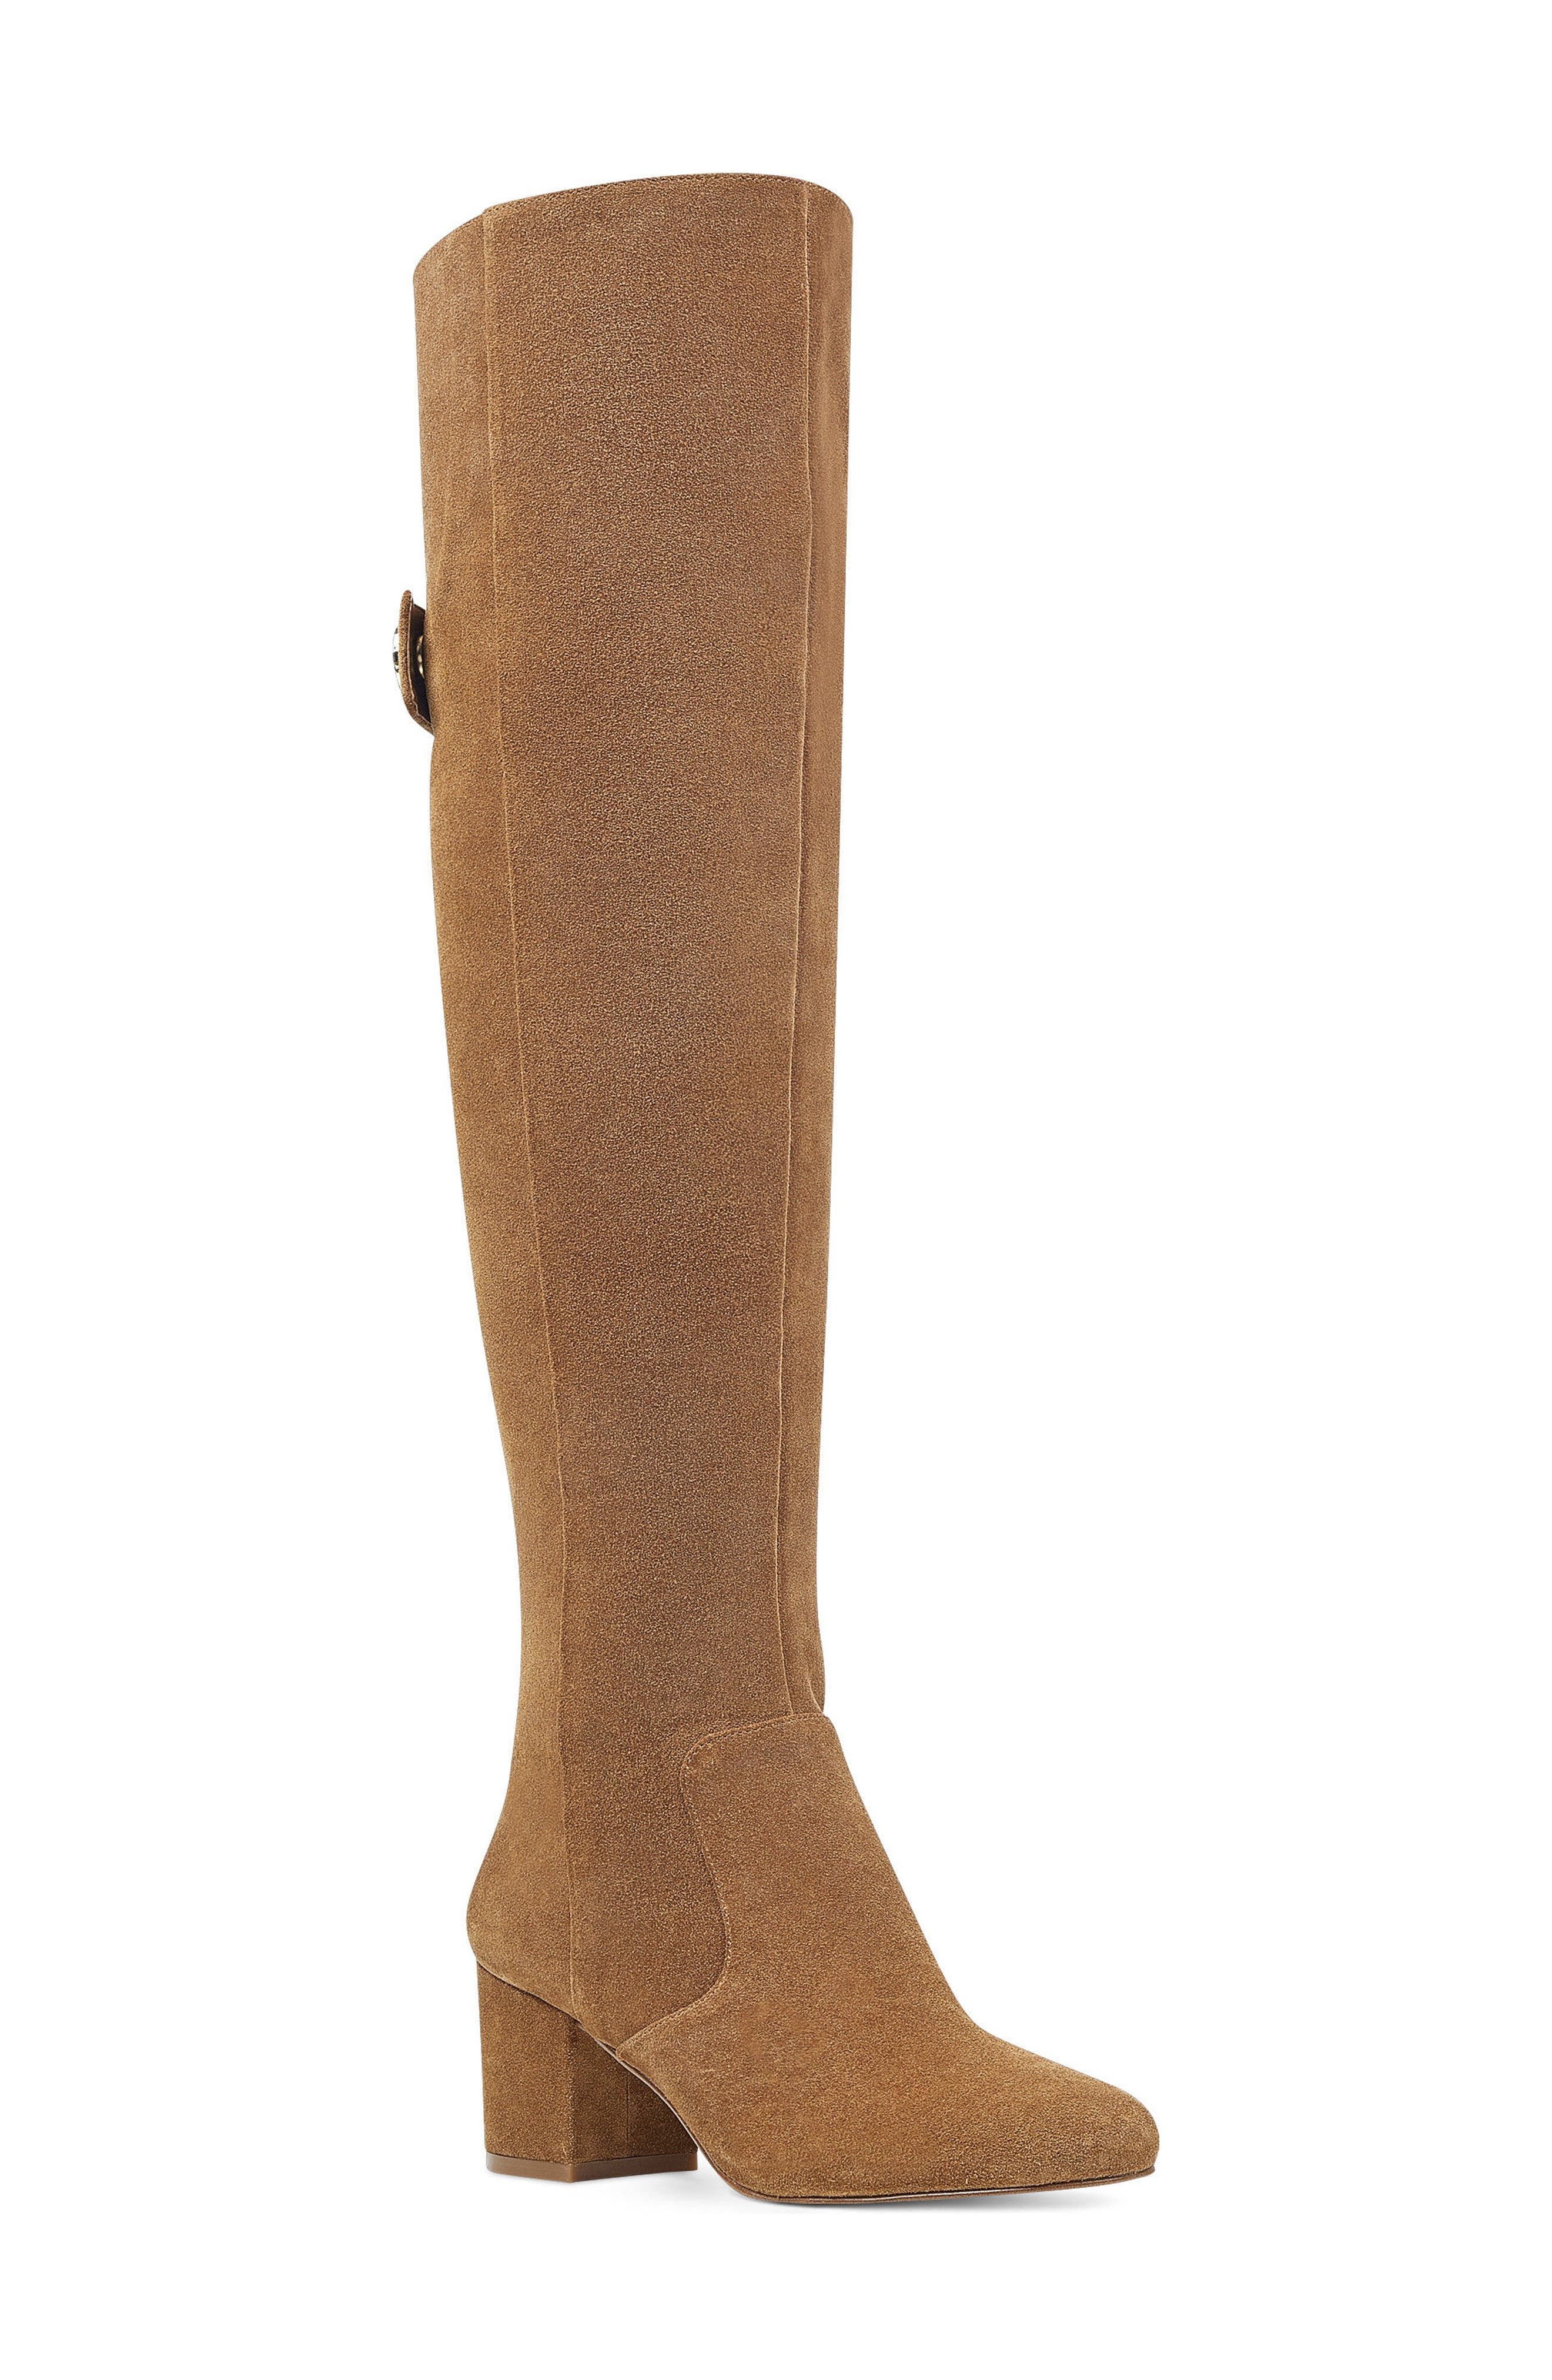 Queddy Over the Knee Boot,                             Main thumbnail 2, color,